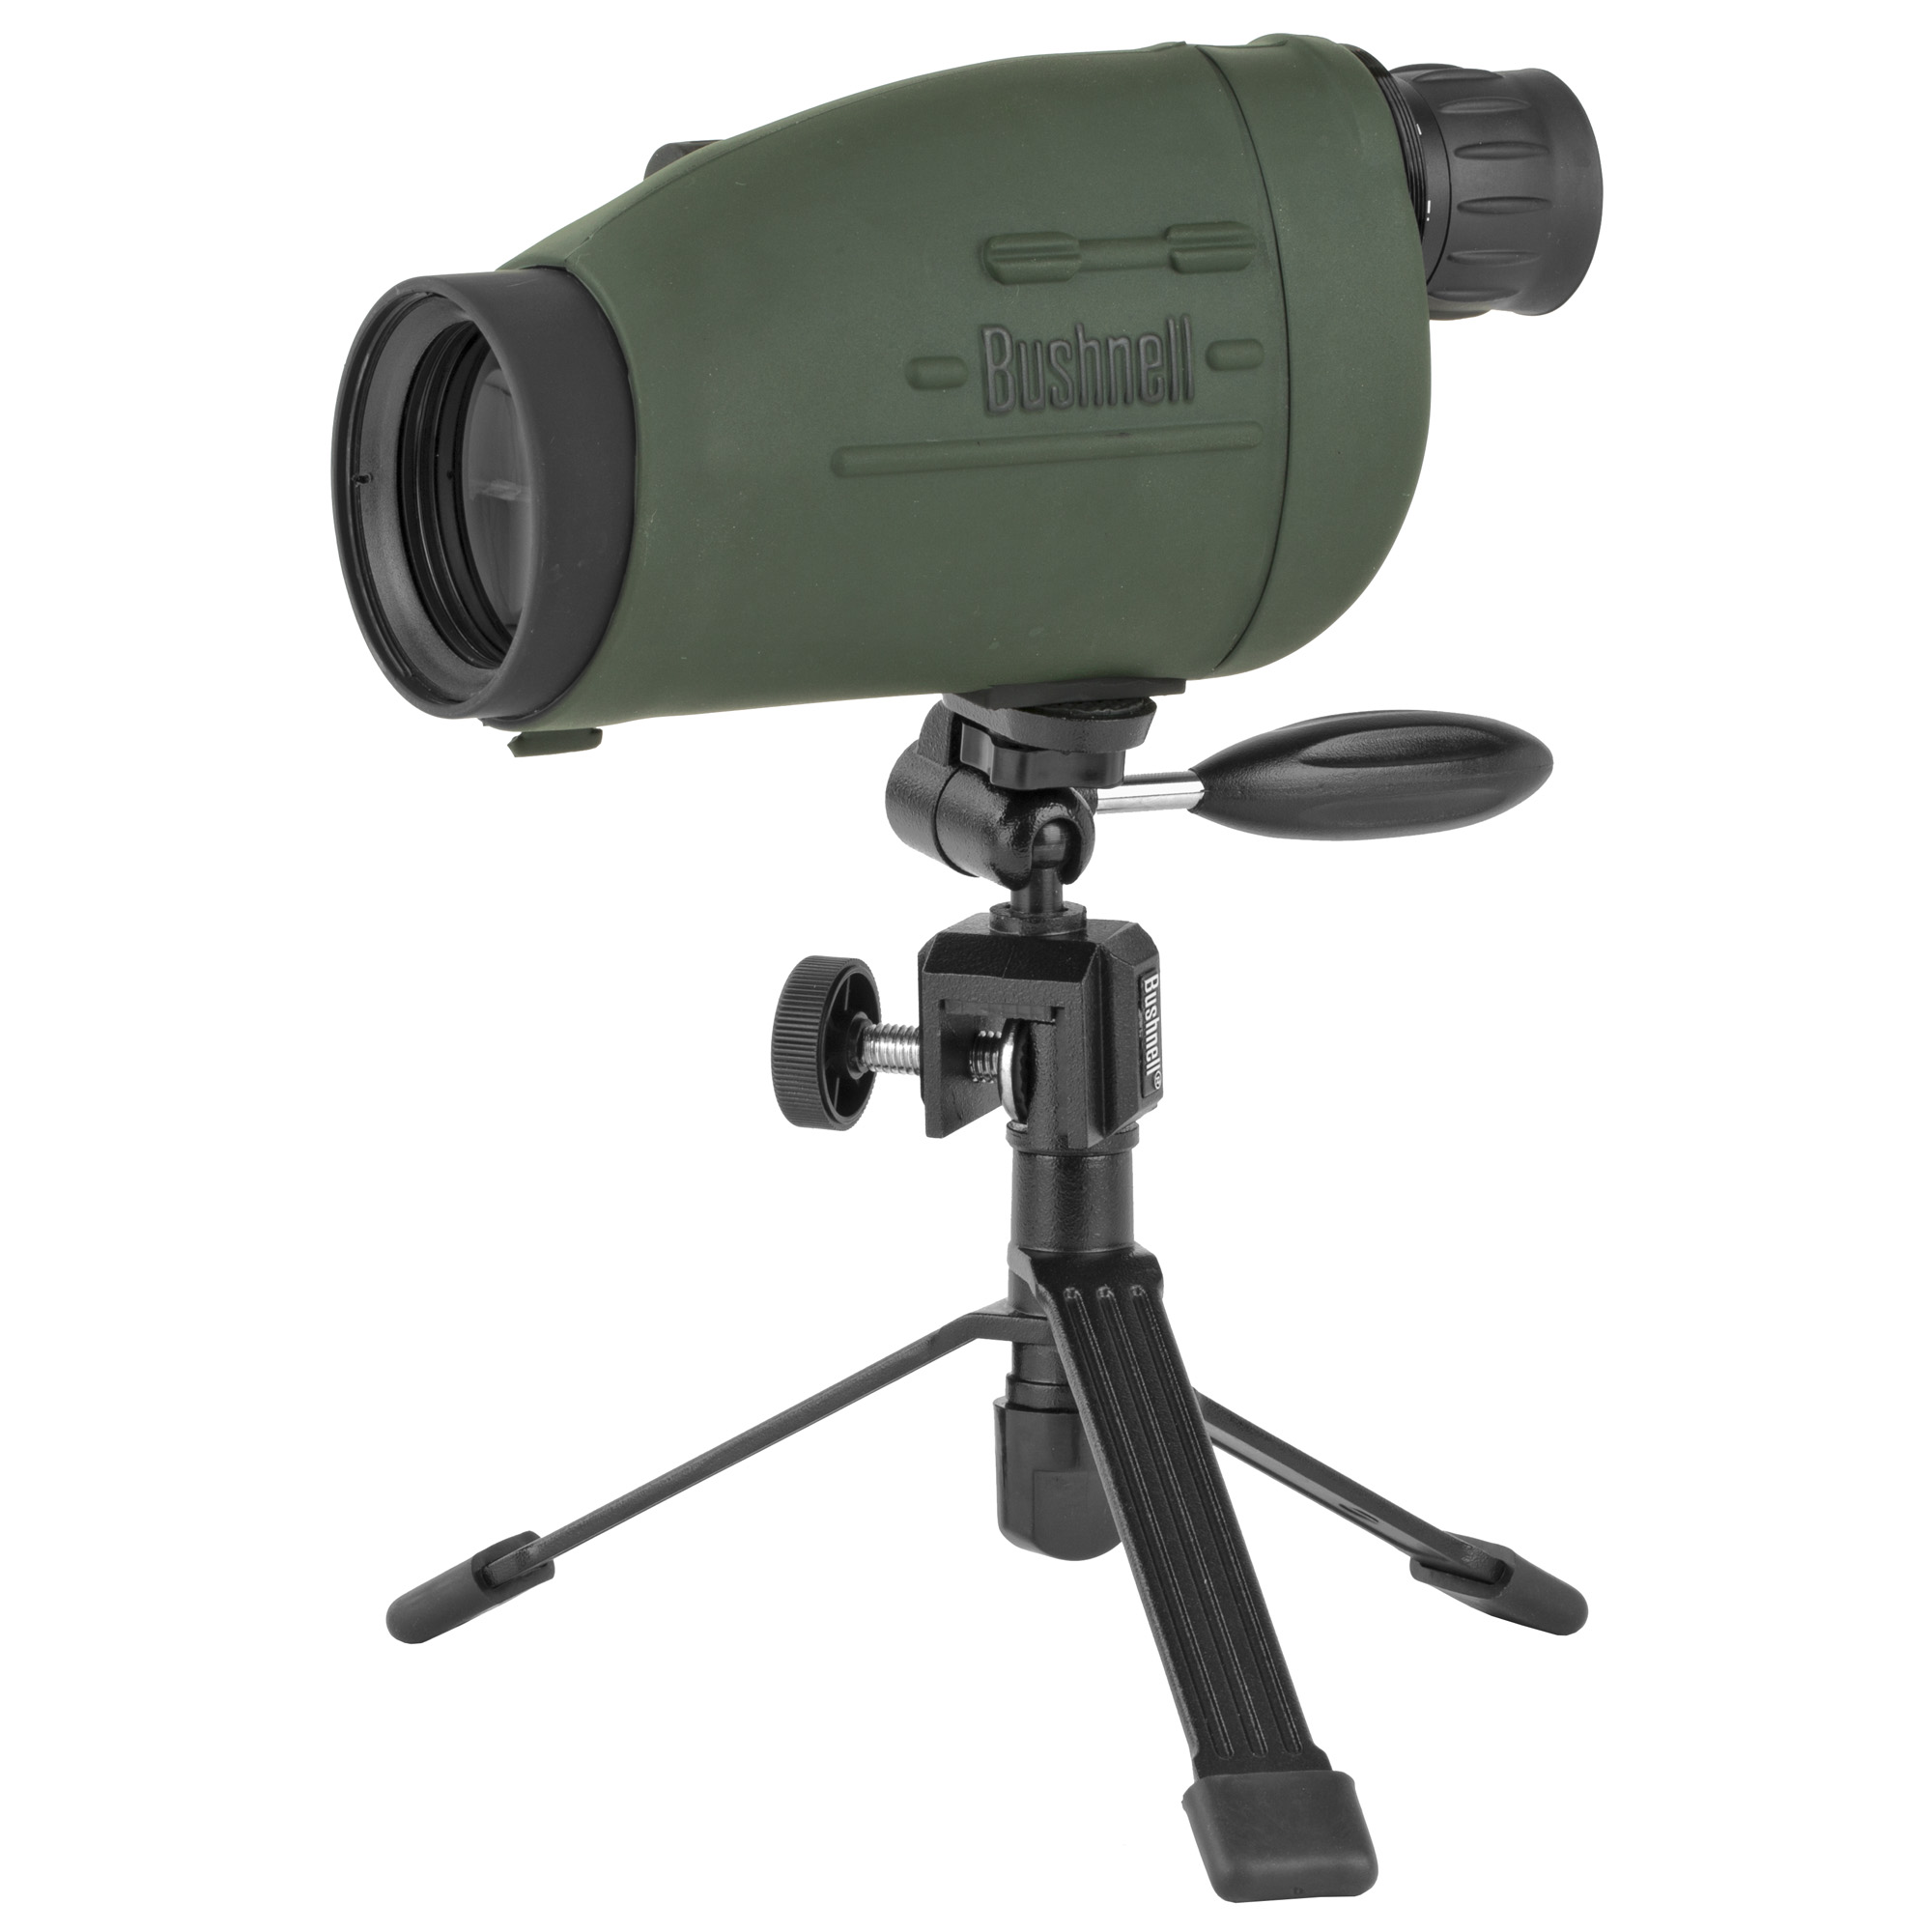 Designed specifically for hunting applications where compact optics are a necessity.